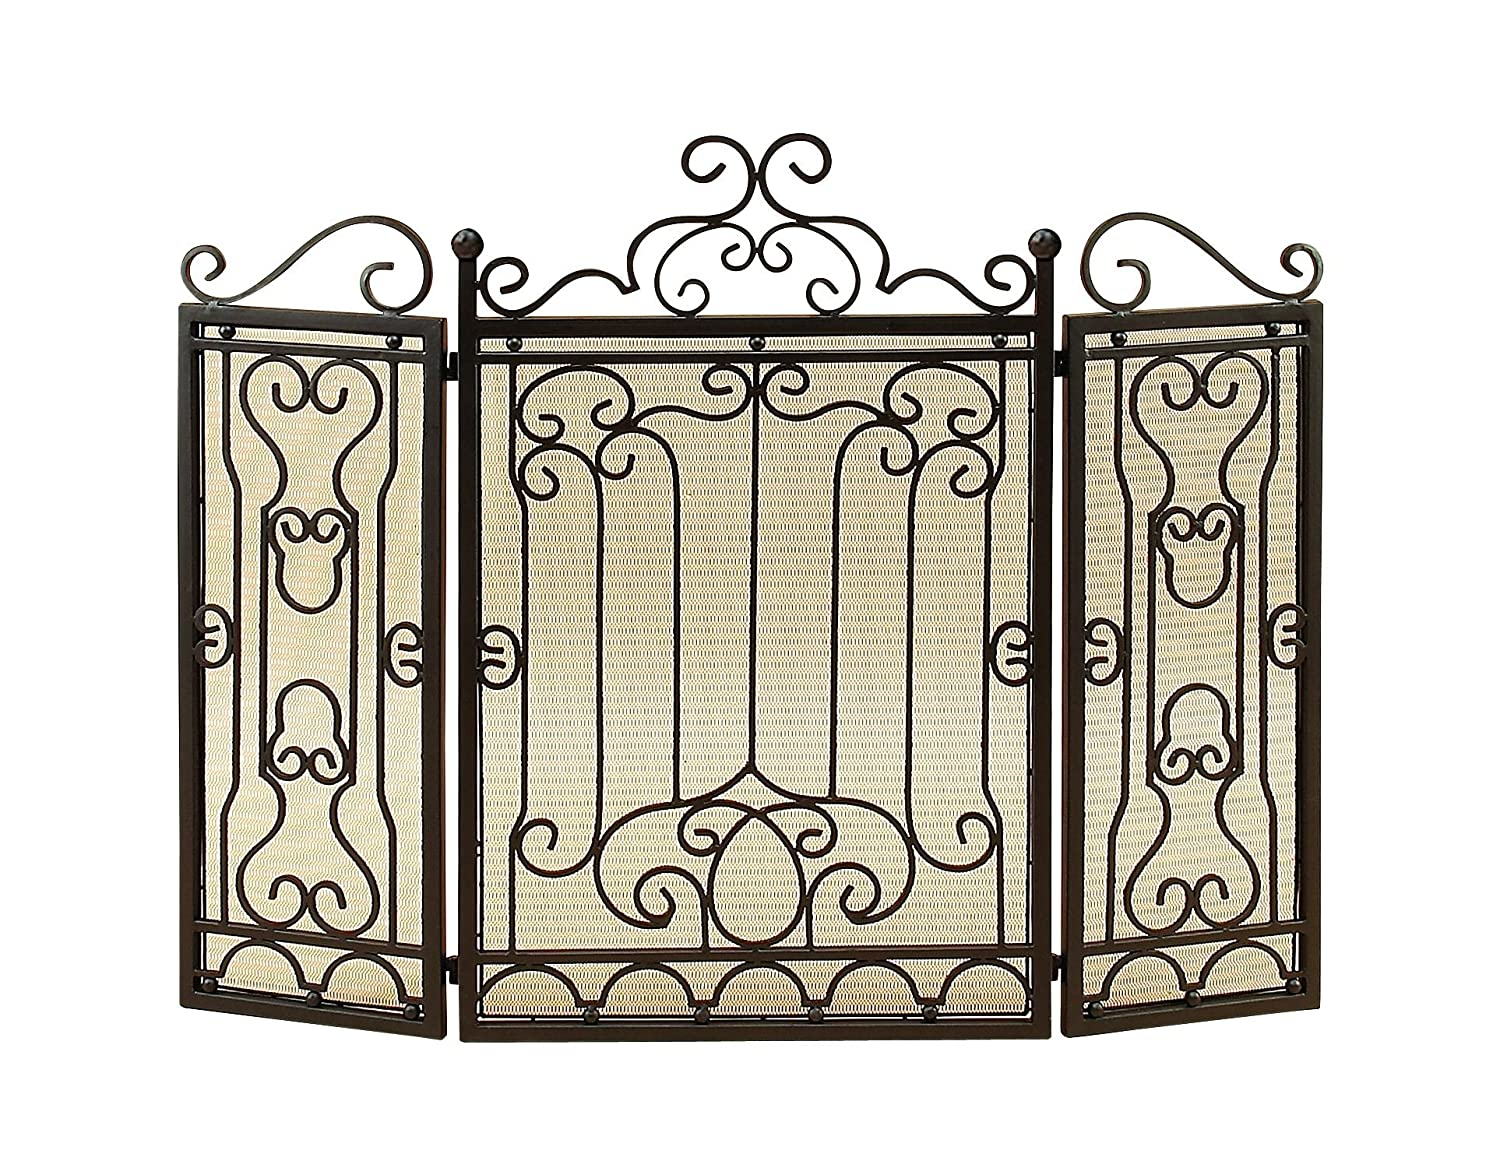 Benzara Splendid 3-Panel Metal Fire Screen, Black BM06846